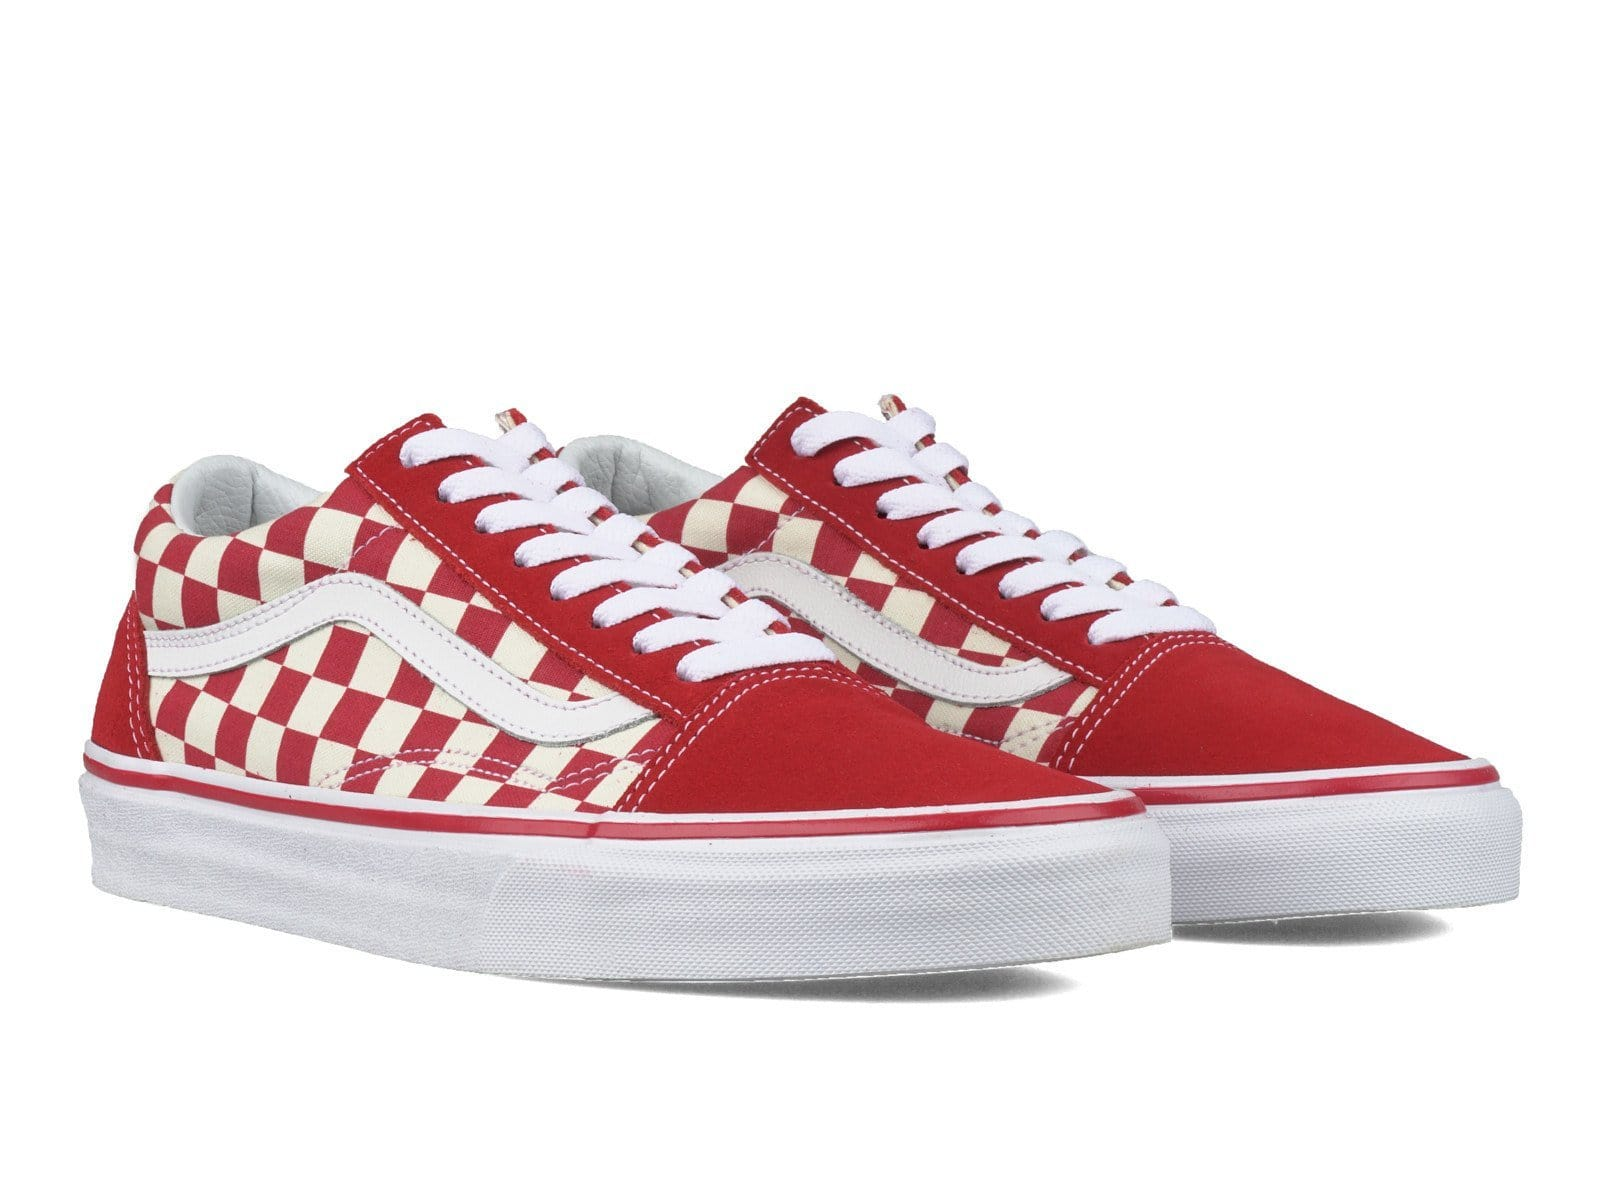 804783bca5fa Vans Old Skool Checkerboard Red White – Bodega